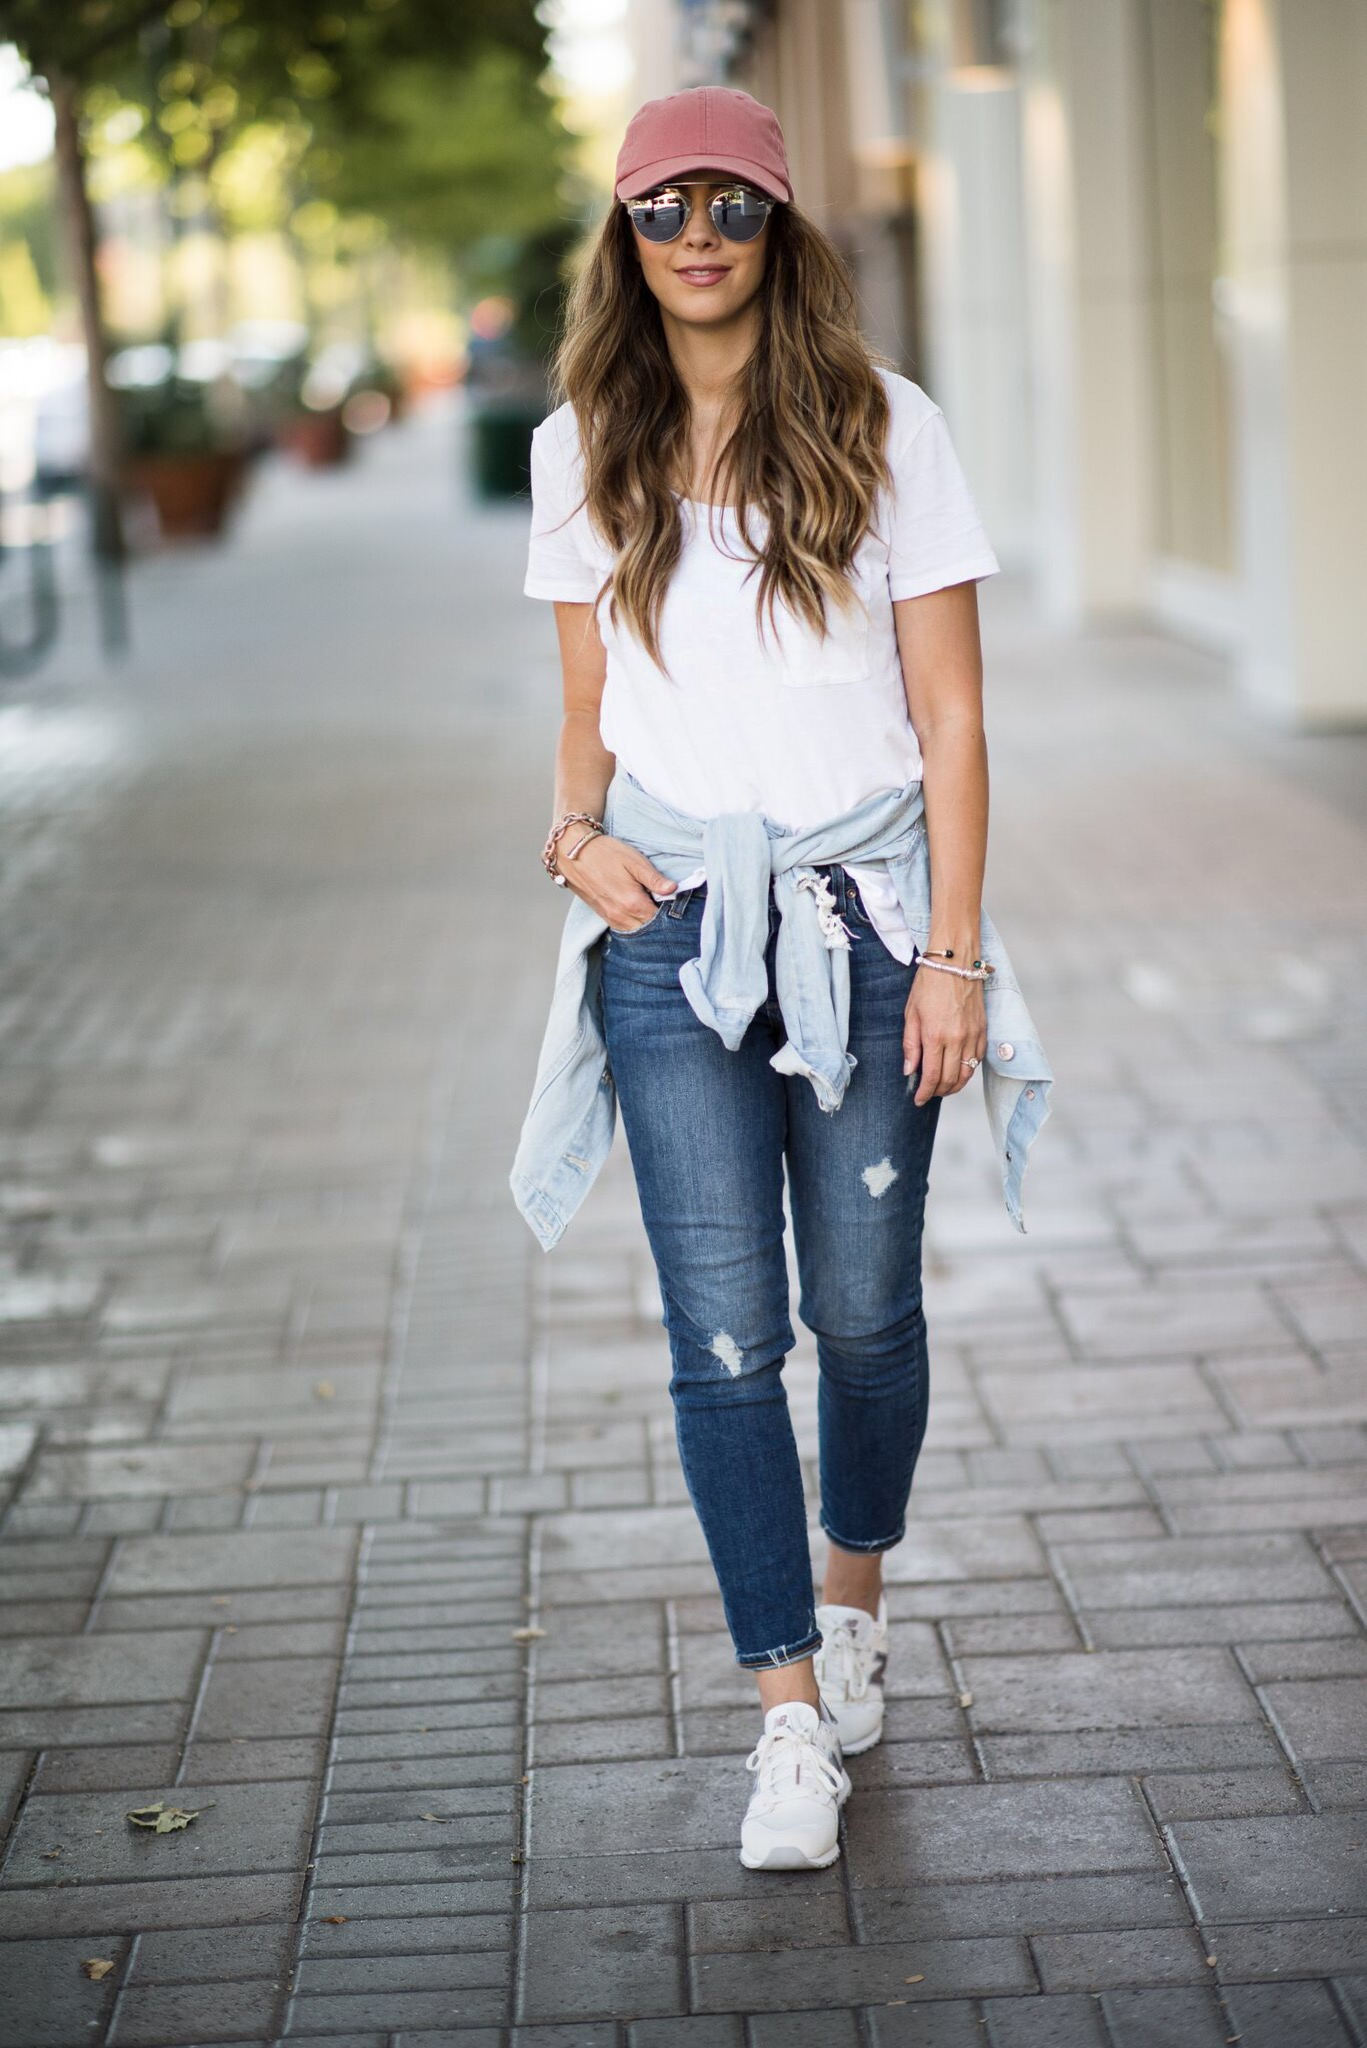 3 Tips On Putting Together A Sporty And Casual Look